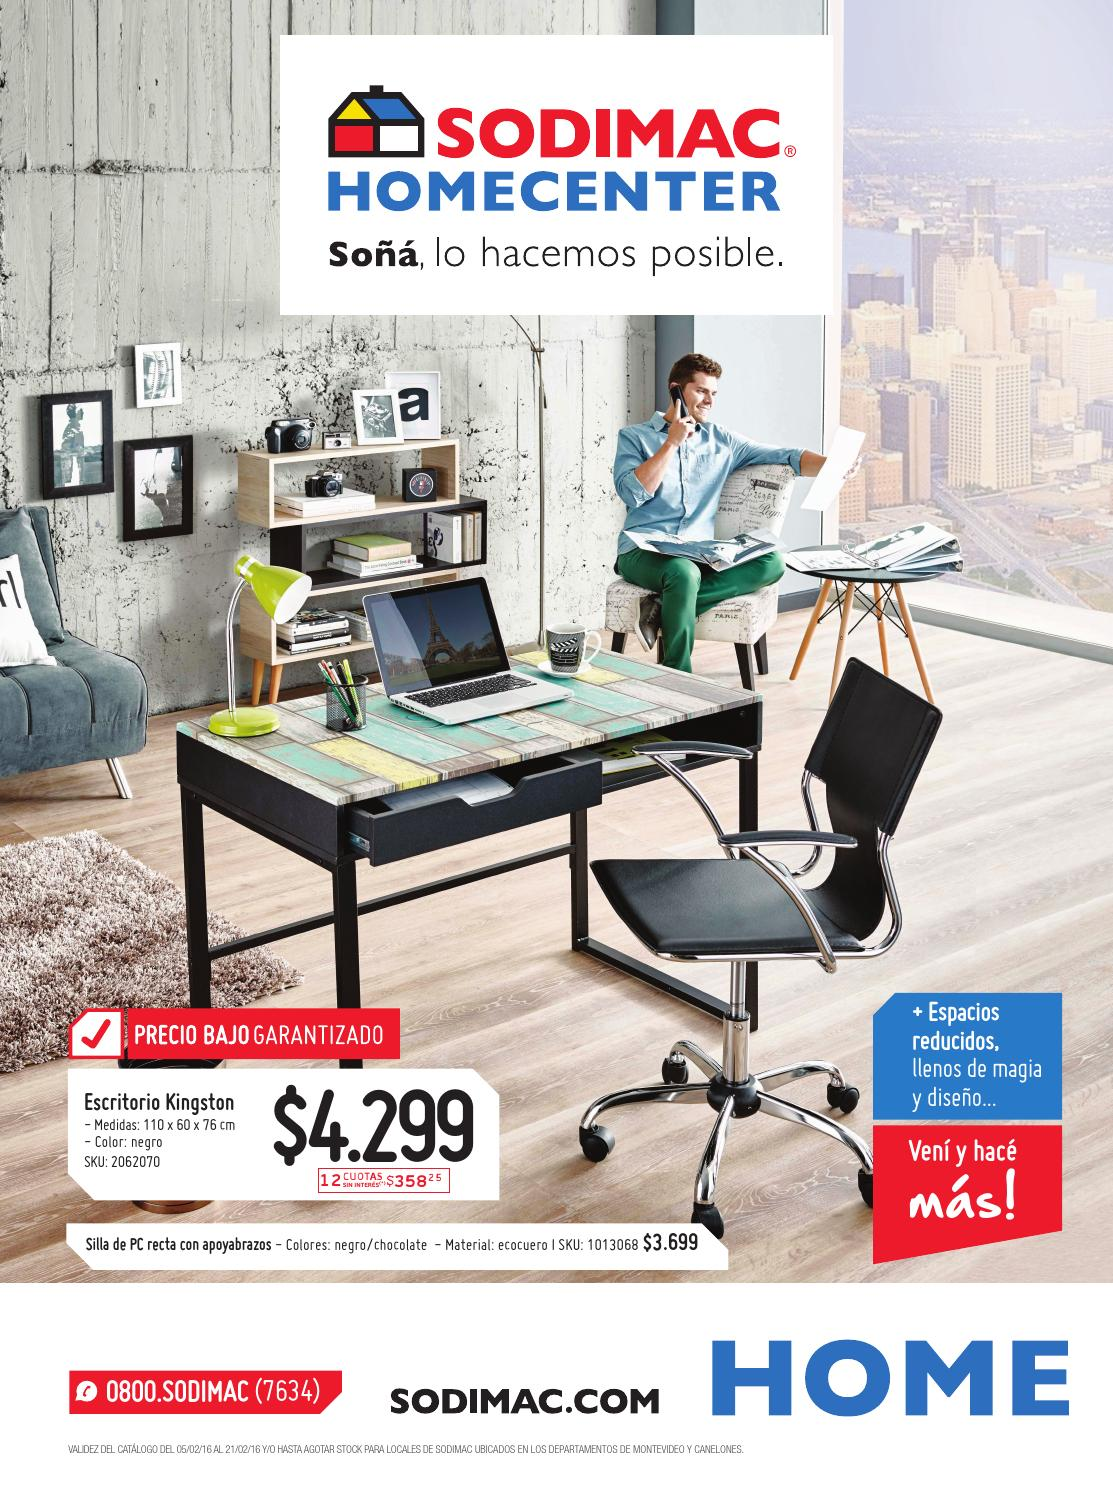 Sodimac homecenter cat logo febrero 2016 uy by sodimac for Sillas para oficina sodimac